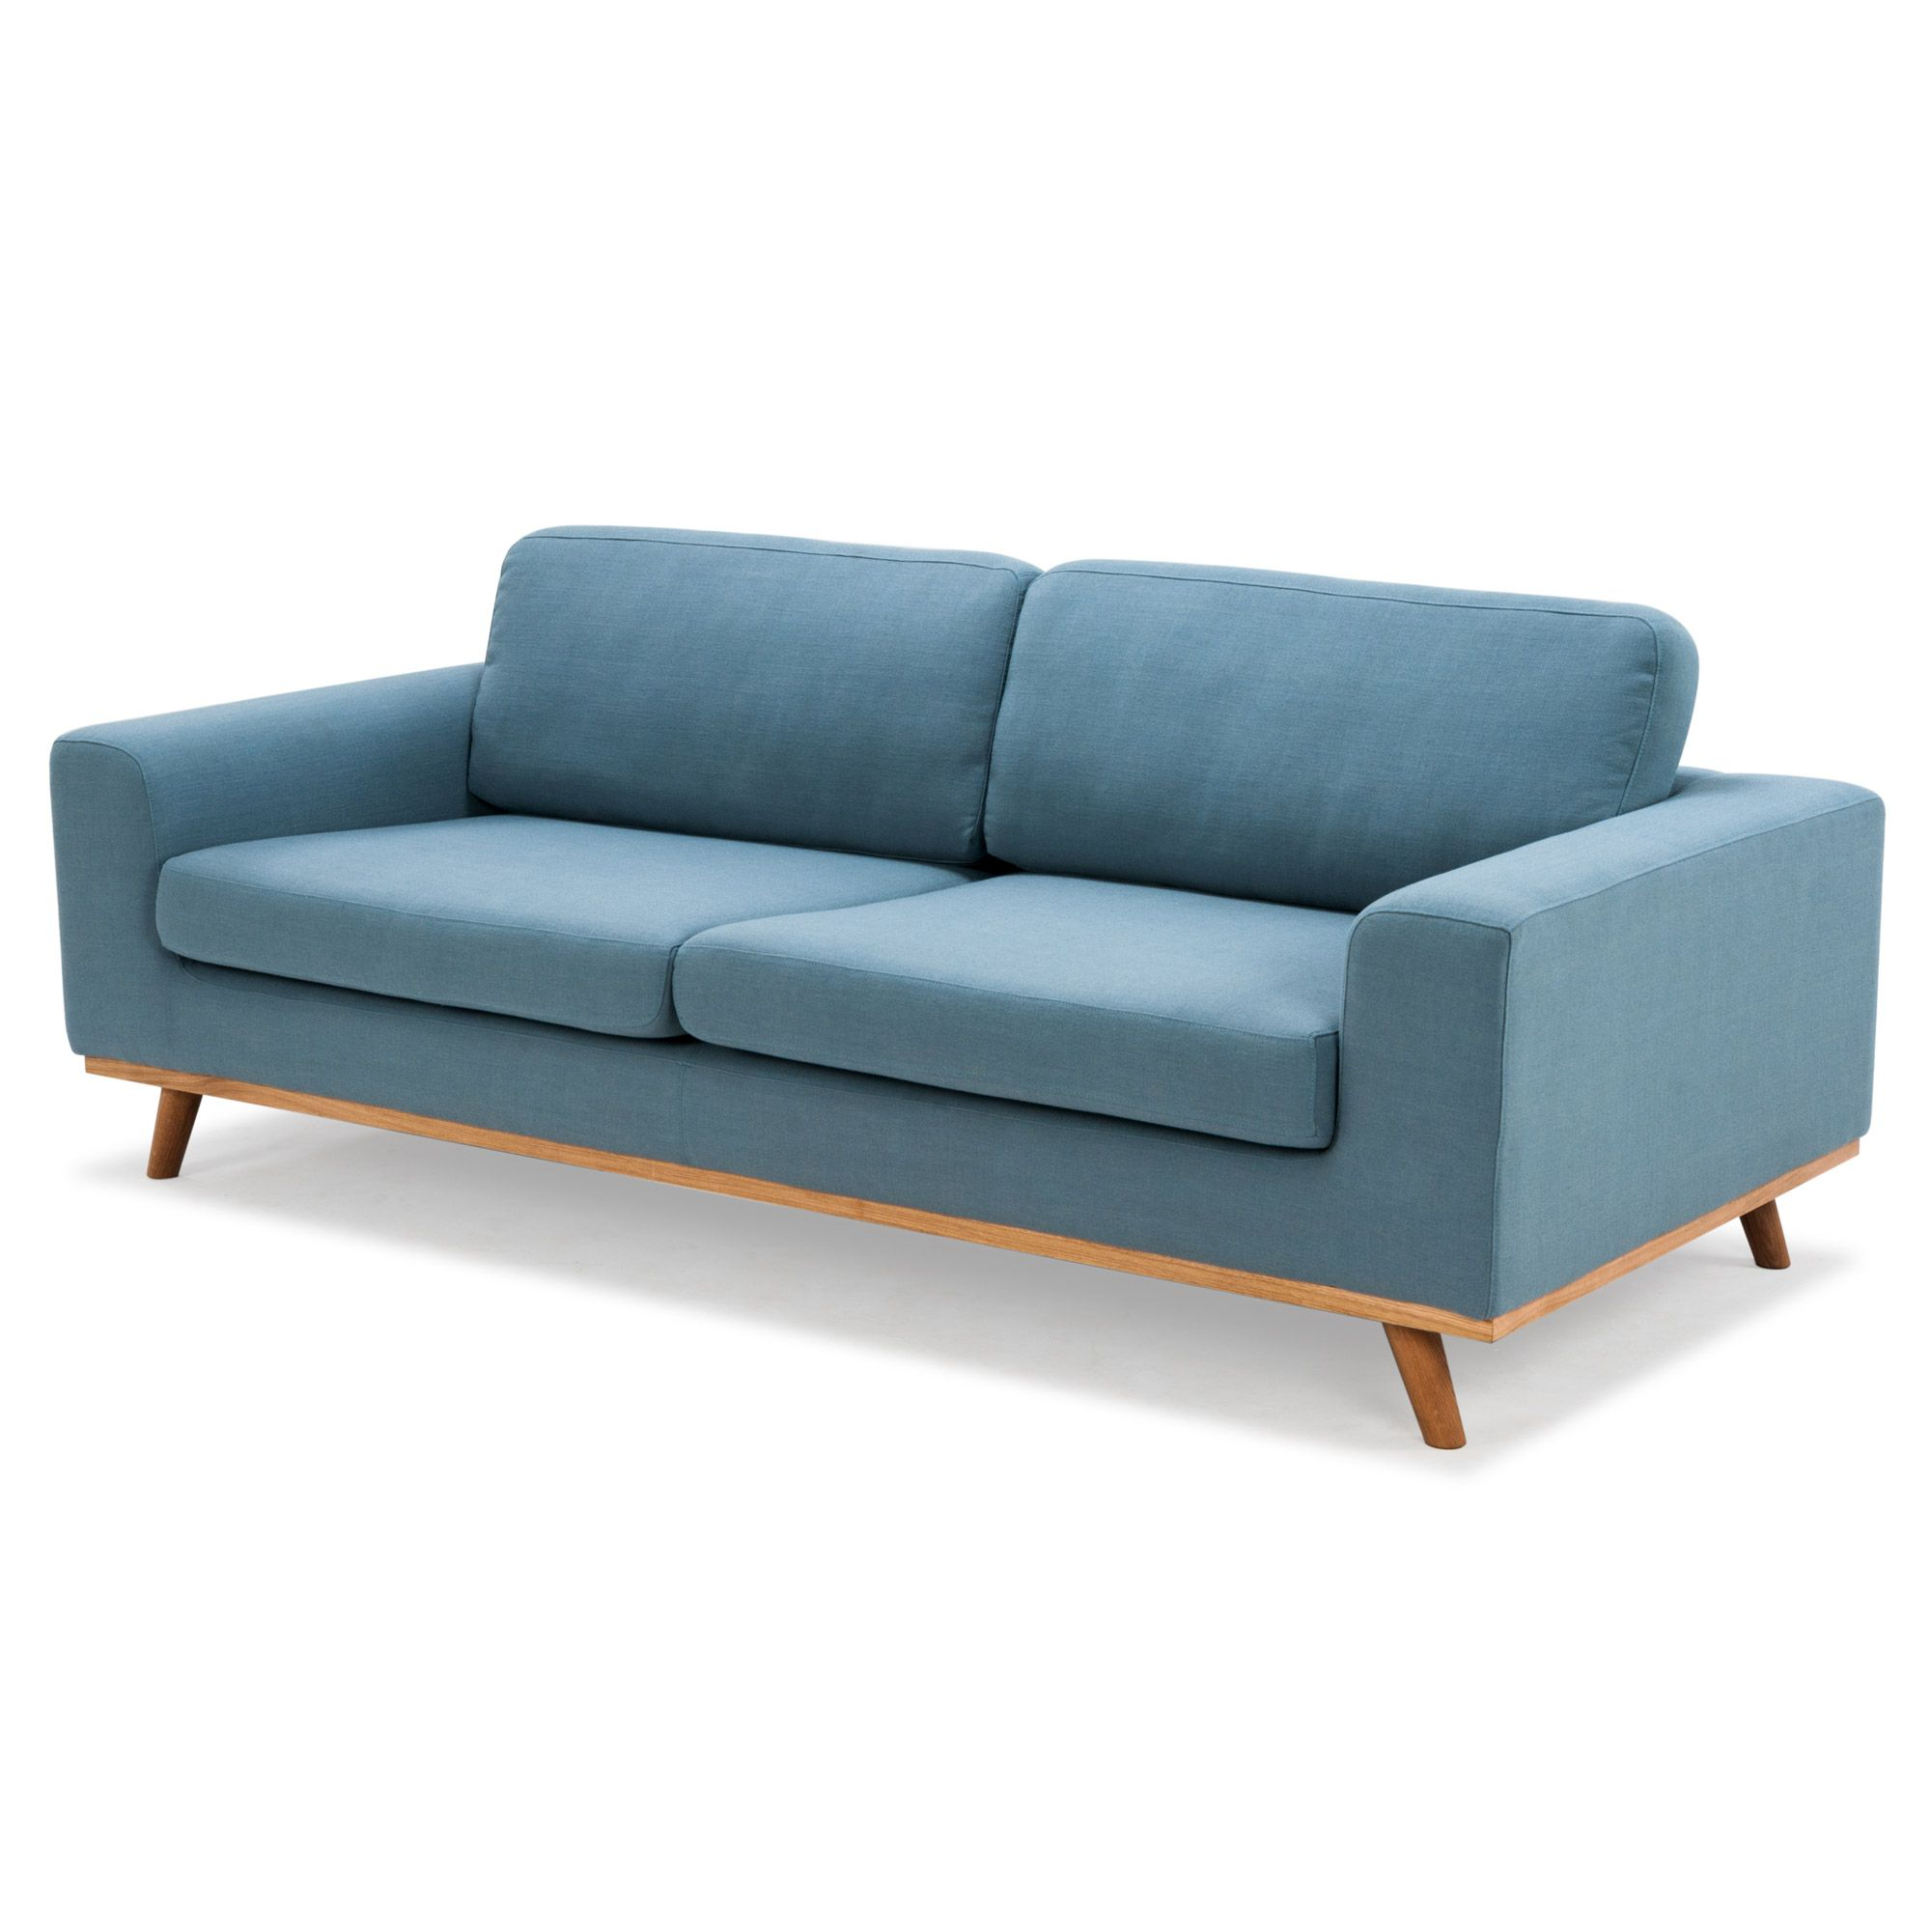 Recast With Arms Full Size Convertible Sofa Bed By Innovation